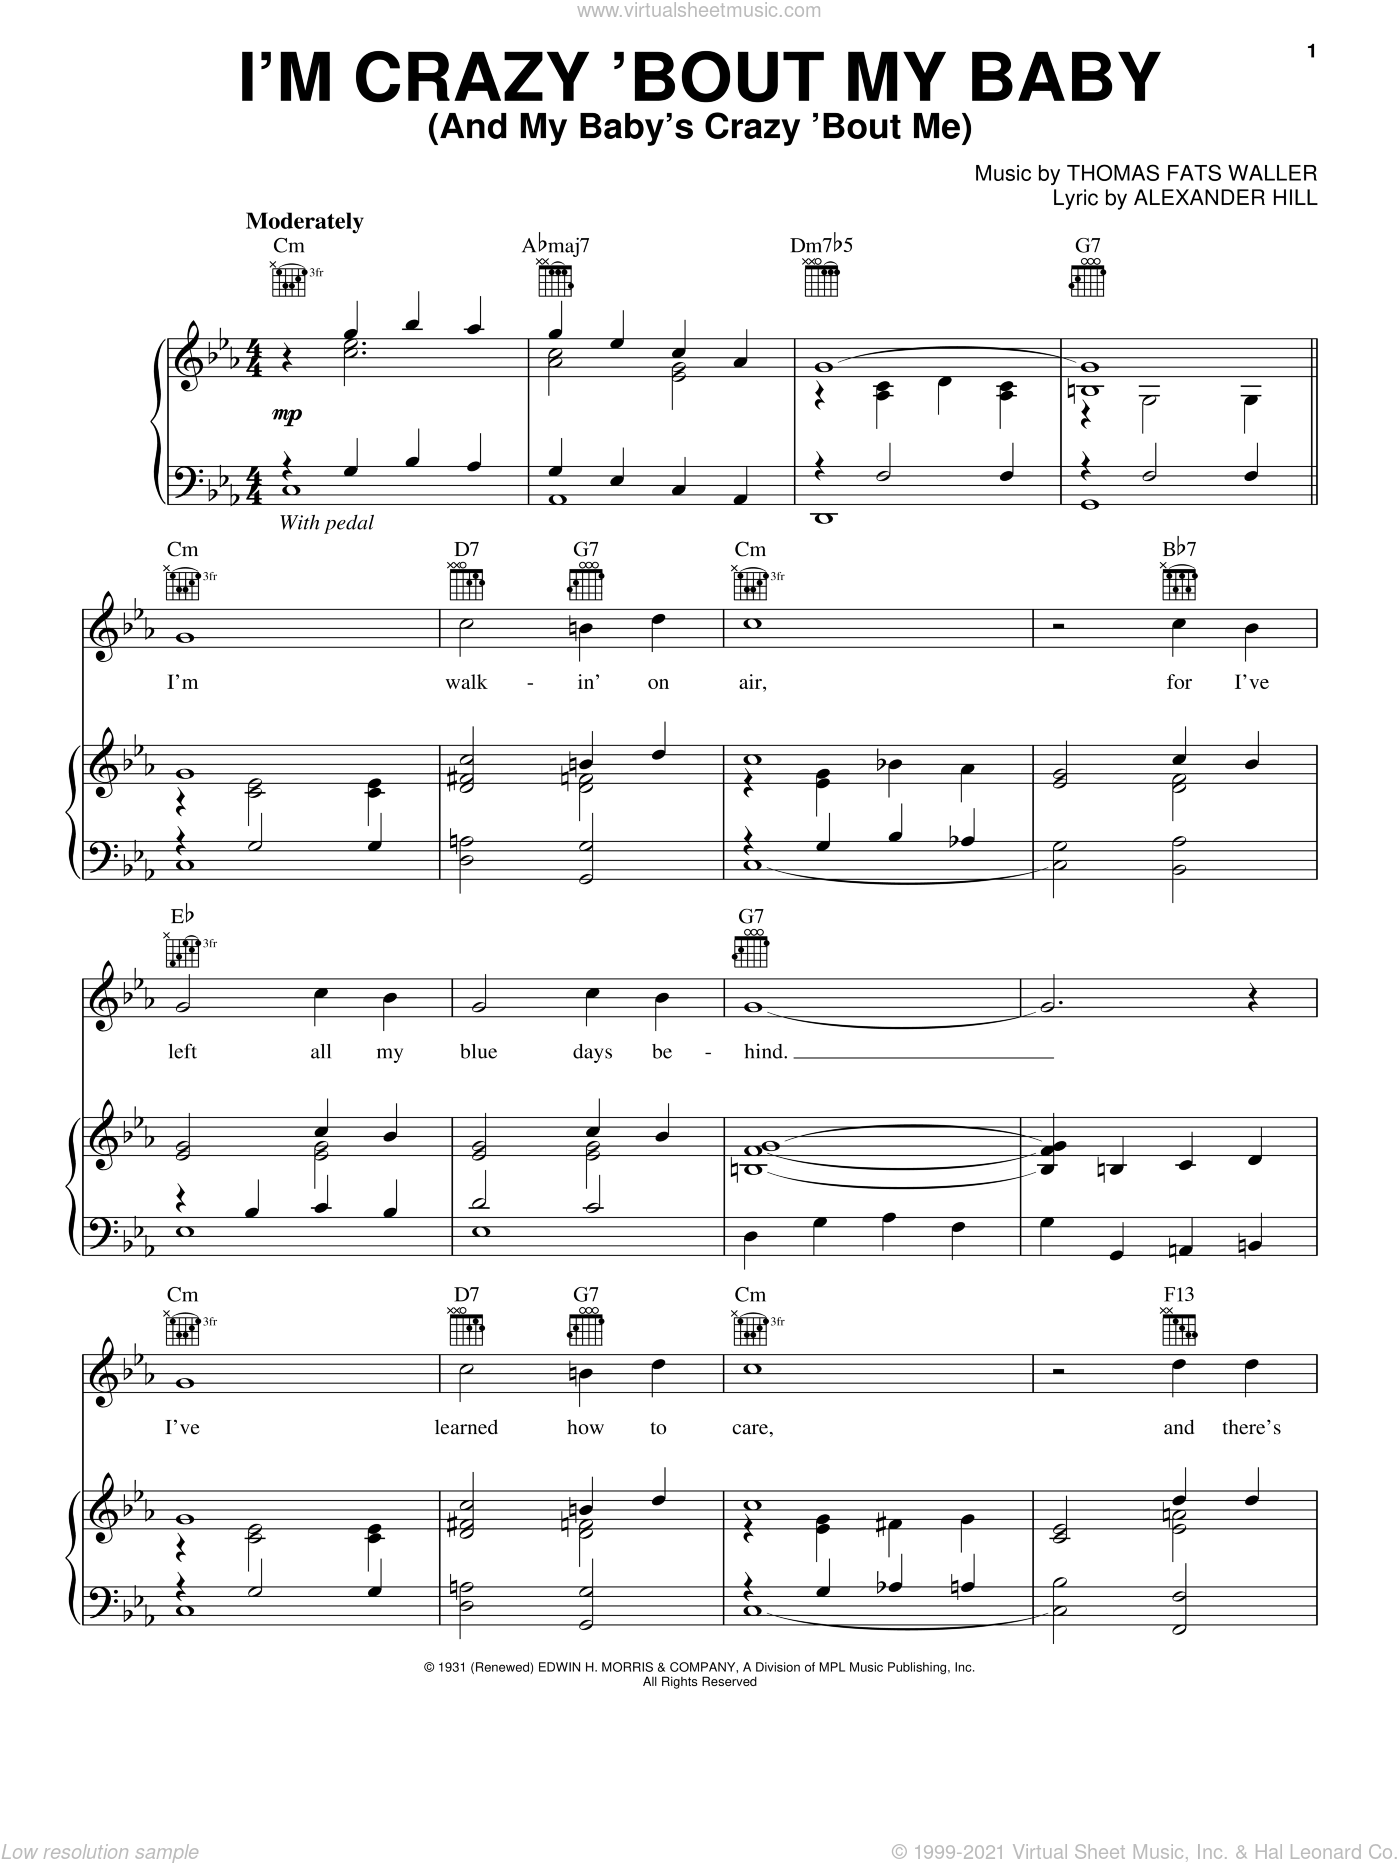 I'm Crazy 'Bout My Baby (And My Baby's Crazy 'Bout Me) sheet music for voice, piano or guitar by Alexander Hill and Thomas Waller, intermediate skill level